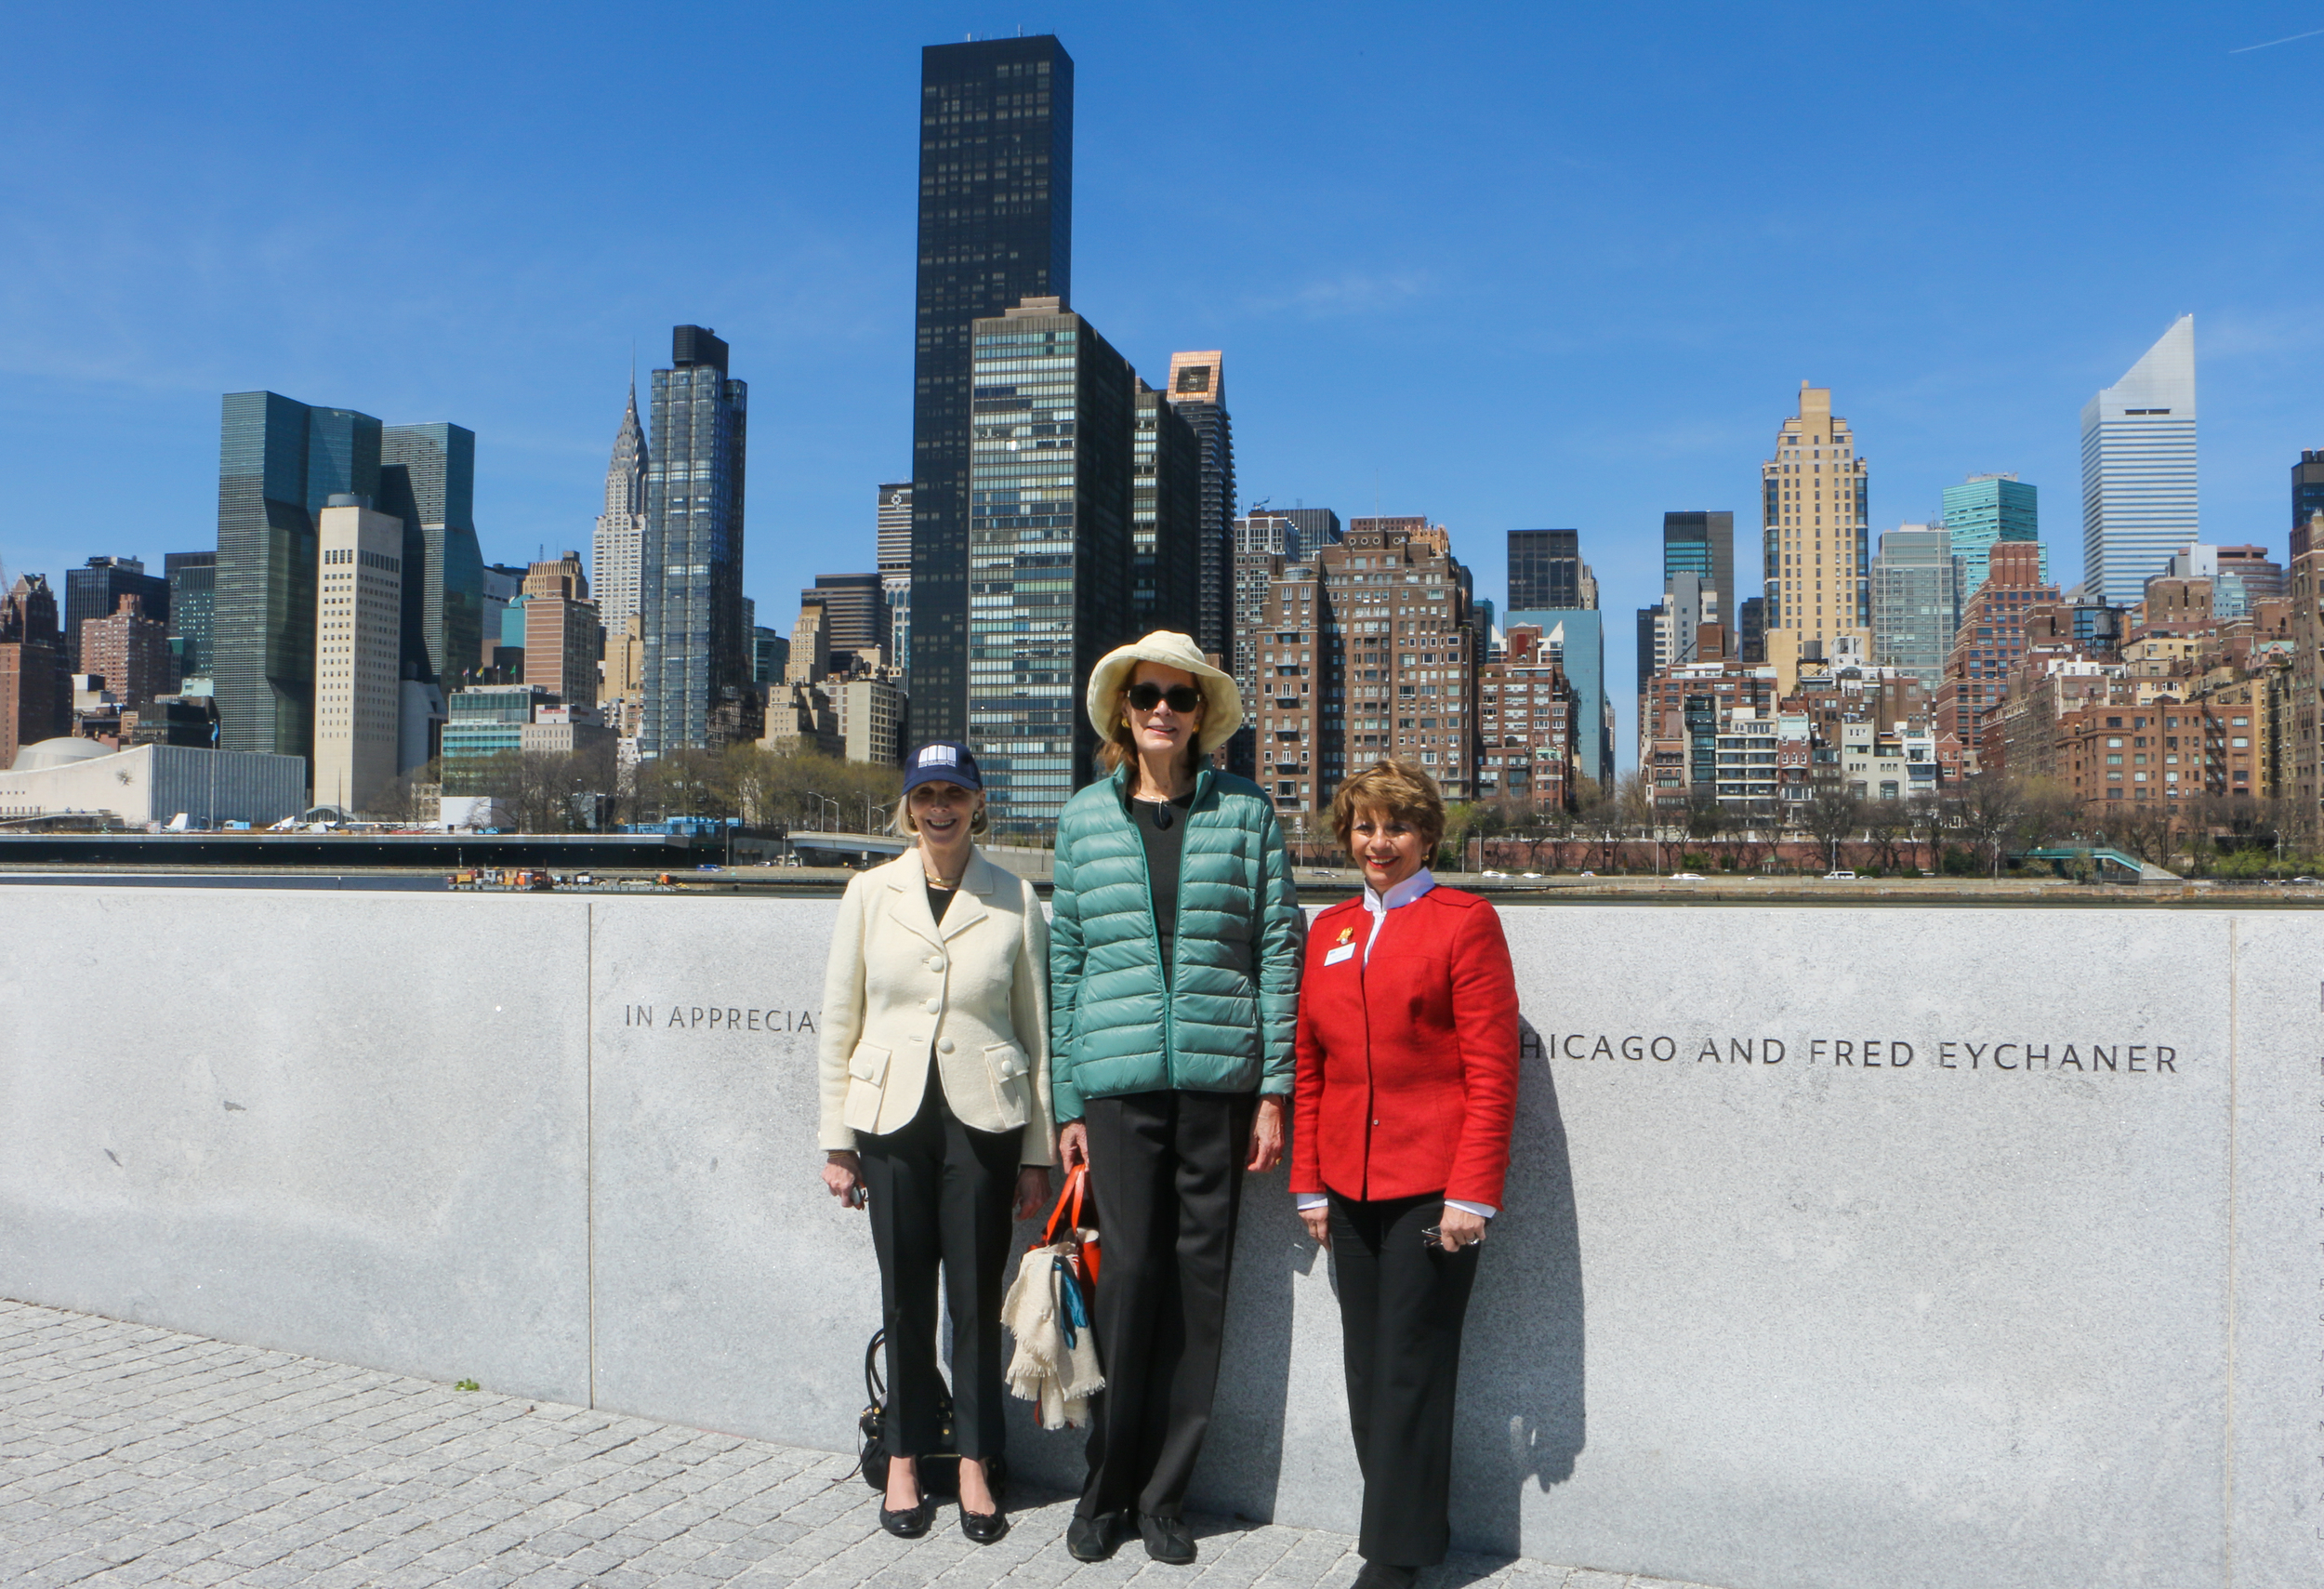 Conservancy board members (from left to right): Barbara Georgescu, Mrs. Franklin D. Roosevelt, Jr., and Sally Minard